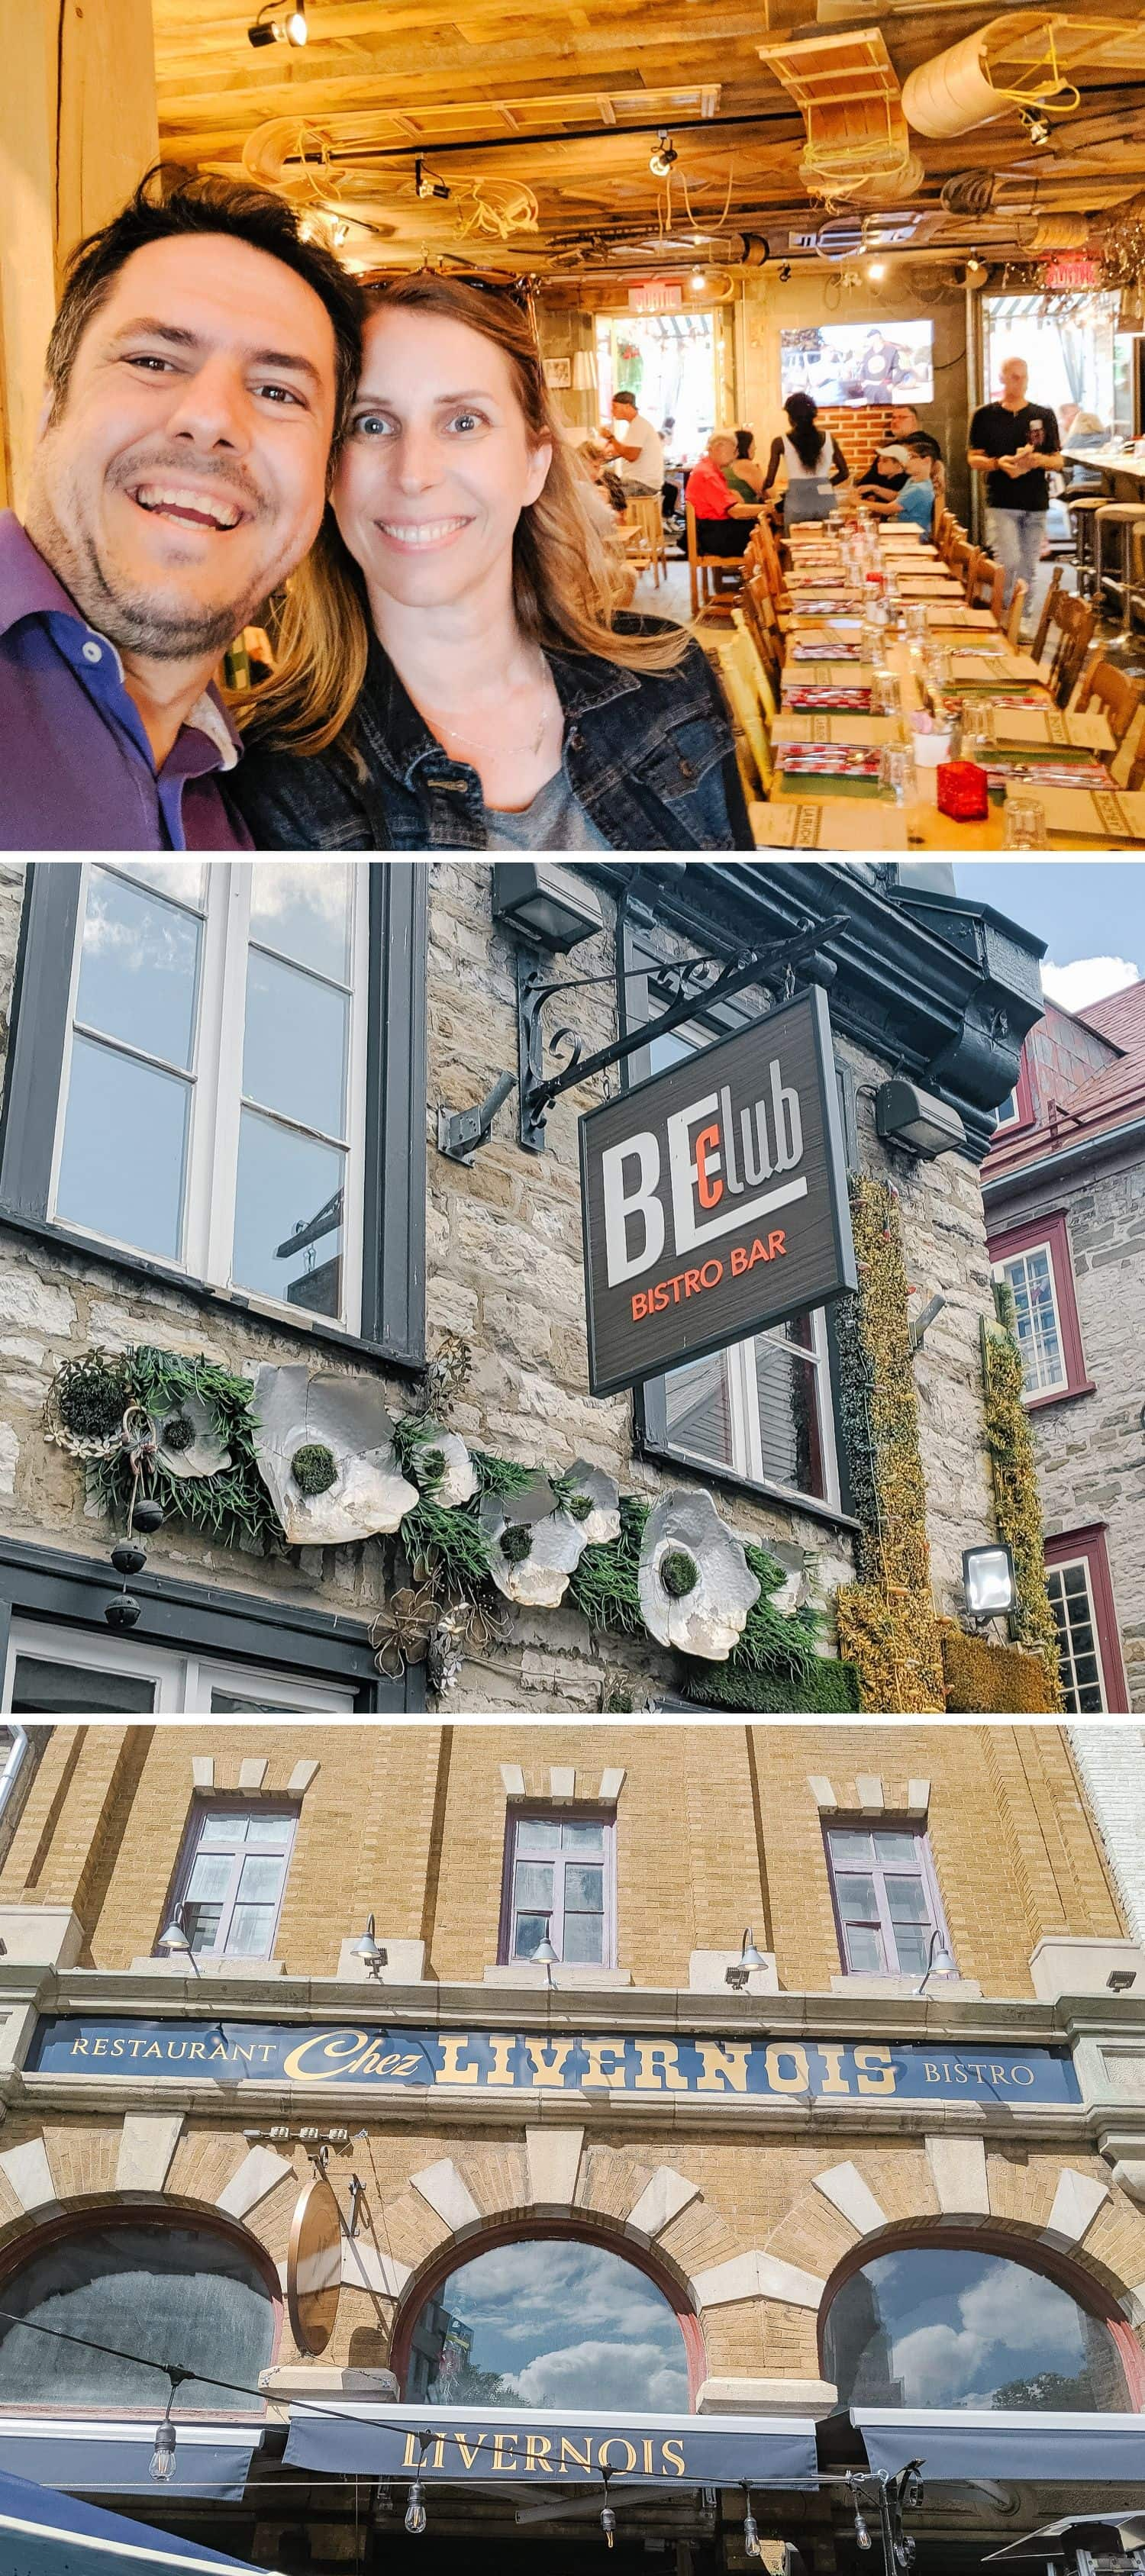 La Buche Restaurant, BEClub Restaurant and Chez Livernois in Quebec City